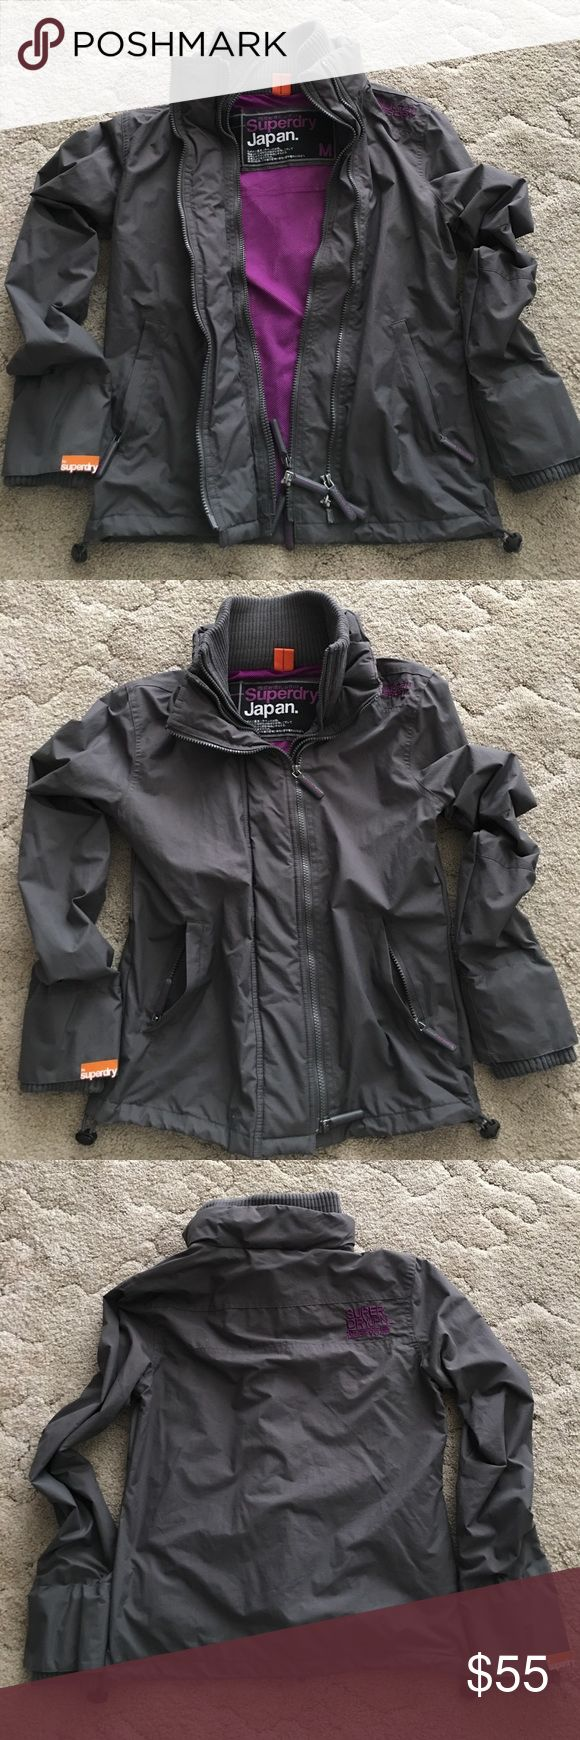 "SuperDry Jacket/Coat - Medium SuperDry windbreaker-type jacket in size Medium. Medium gray with purple interior and detail. Purchased in used condition from eBay seller and only used a few times myself. Good condition. Approx measurements: 19"" armpit to armpit, 23"" tip of shoulder to bottom hem, 19.5"" armpit to end of sleeve. ➡️ Open to offers ⬅️ Superdry Jackets & Coats"